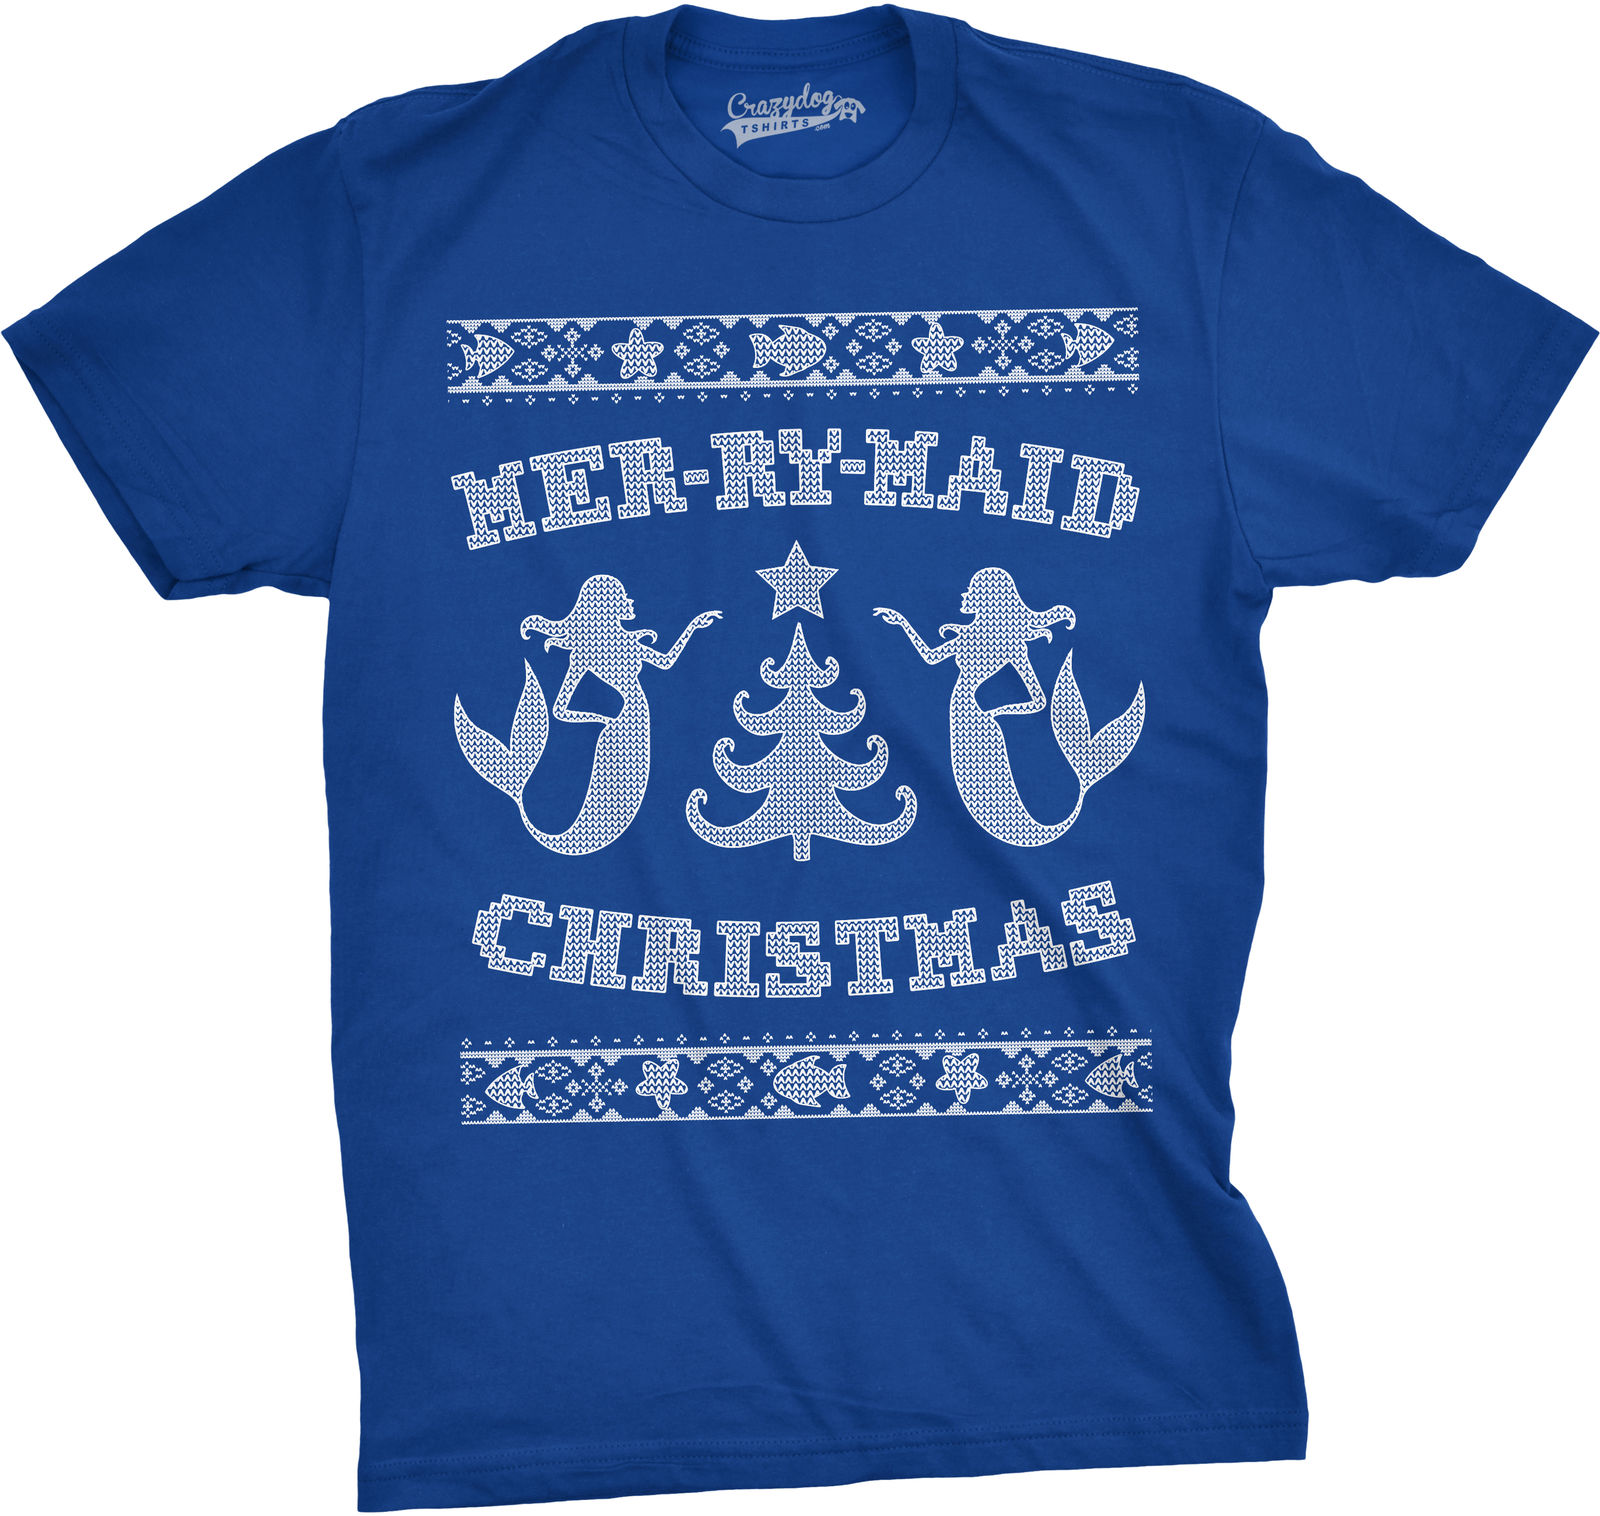 Blue And White Christmas Sweater.Us 13 04 13 Off Mens Mer Ry Maid Tshirt Christmas Funny Sarcastic Mermaid Ugly Sweater Tee Cotton Casual Shirts White Top In T Shirts From Men S